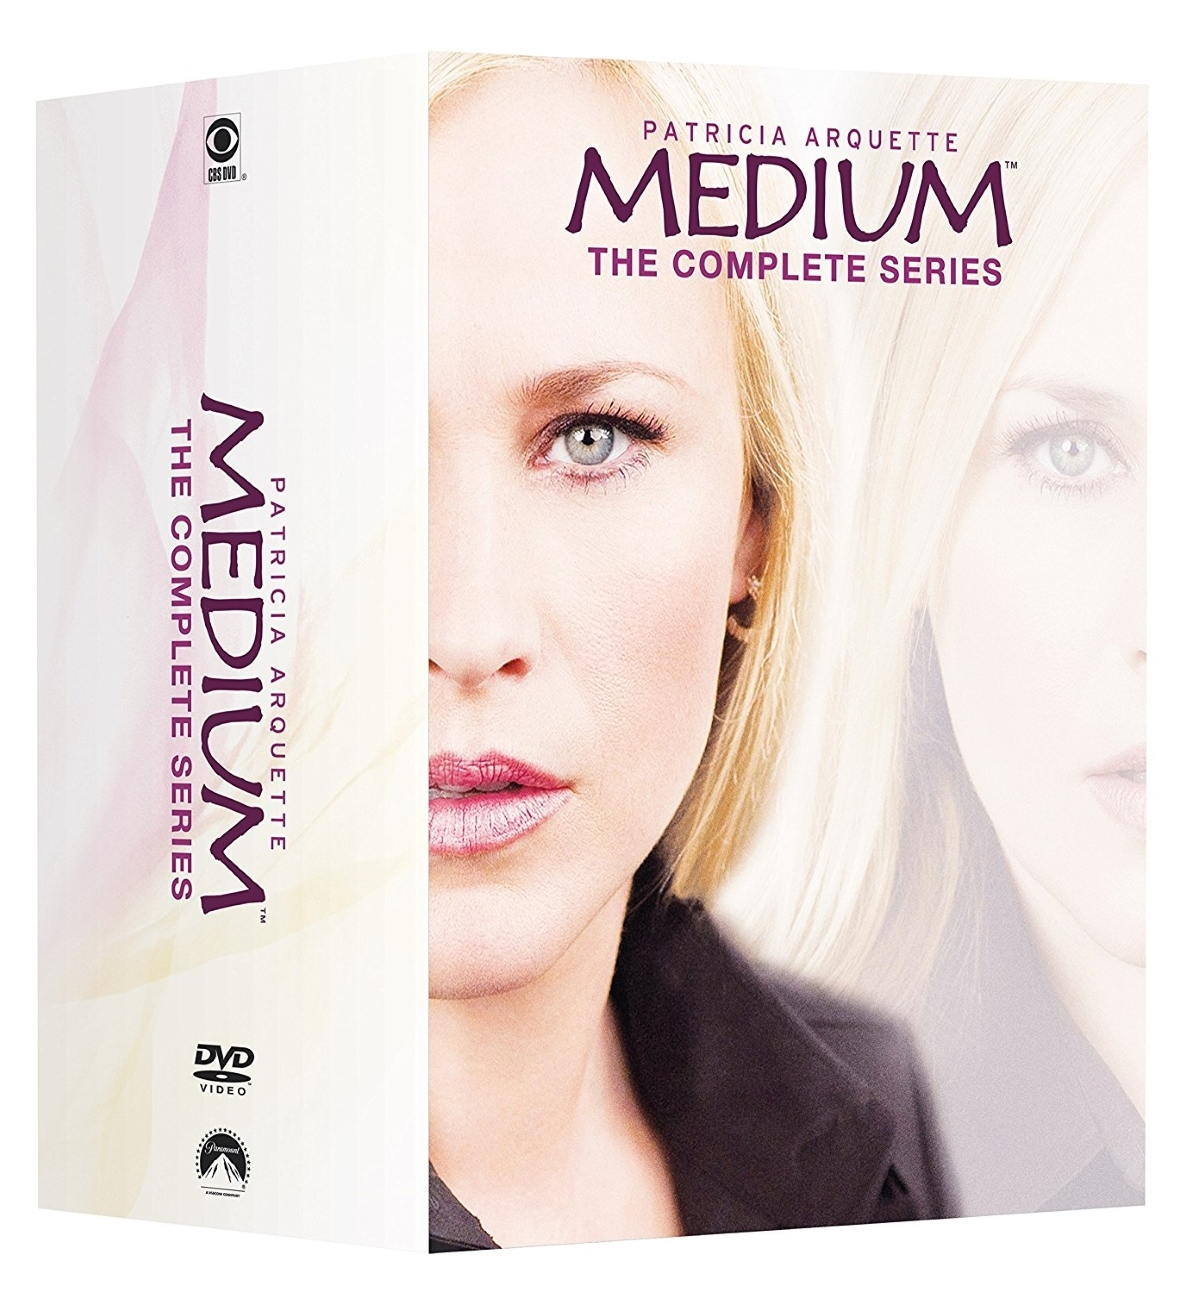 Medium the complete series season 1 7  dvd 2017  35 disc  1 2 3 4 5 6 7